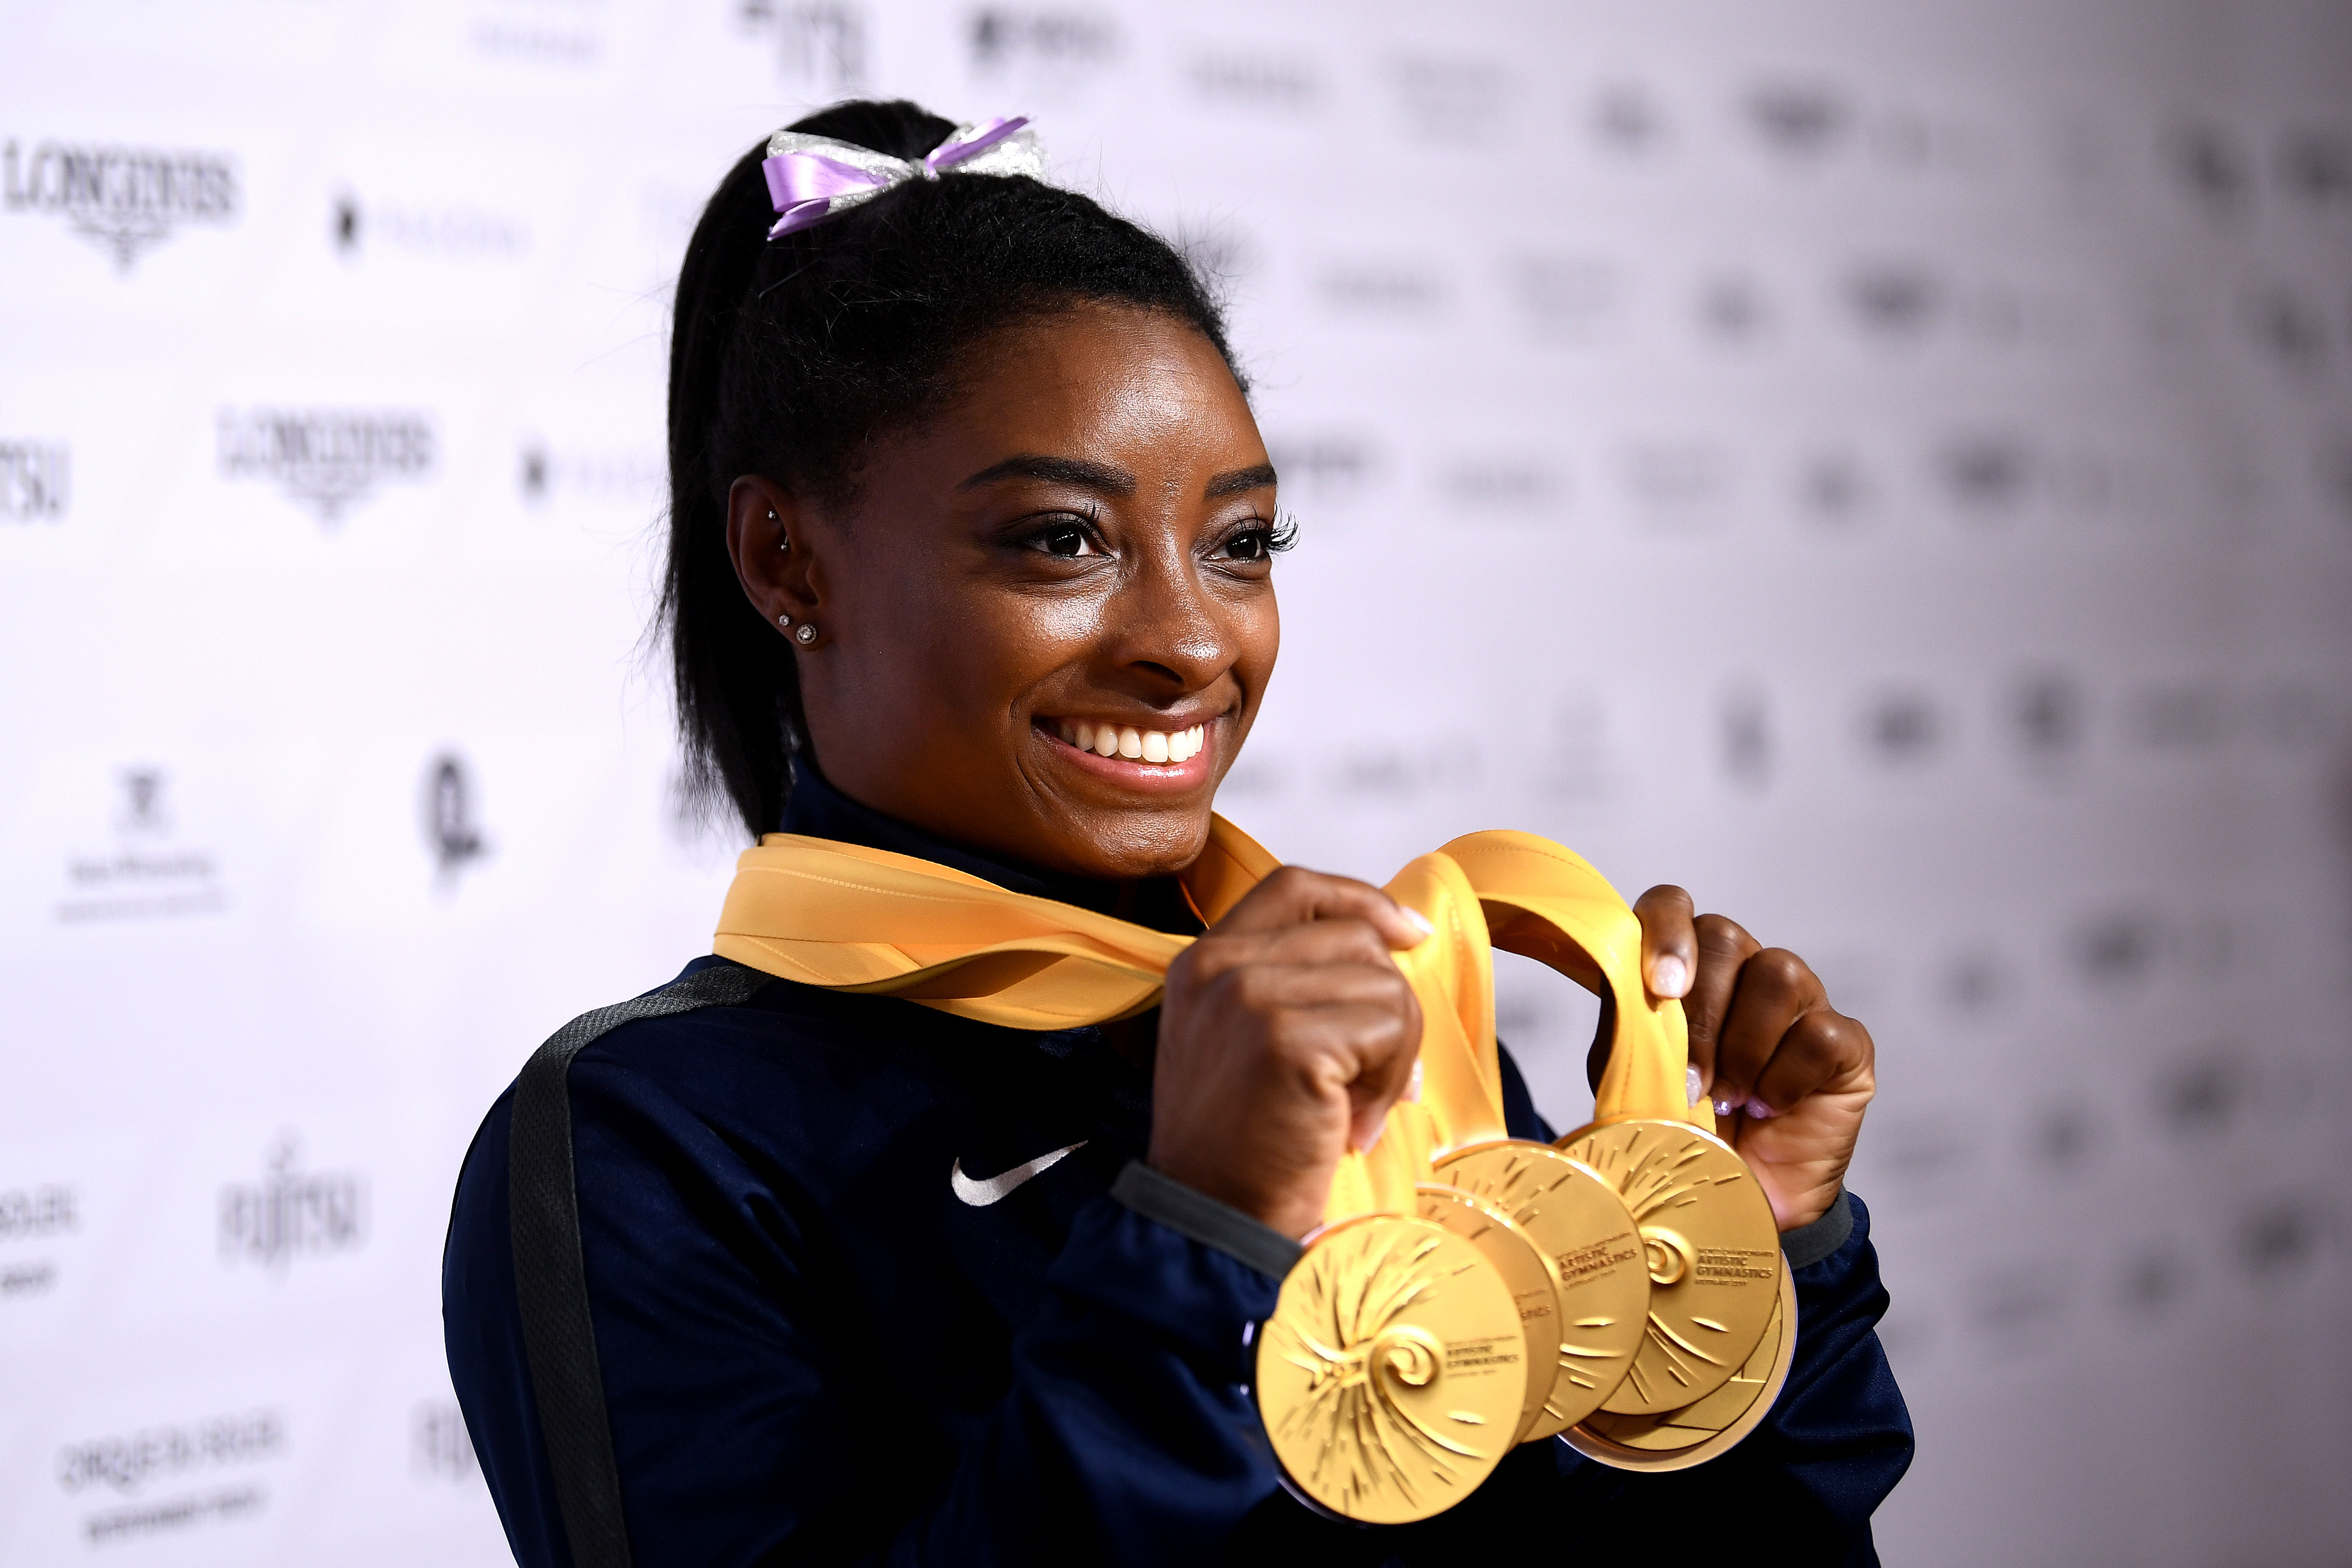 Simone Biles might be the greatest athlete ever